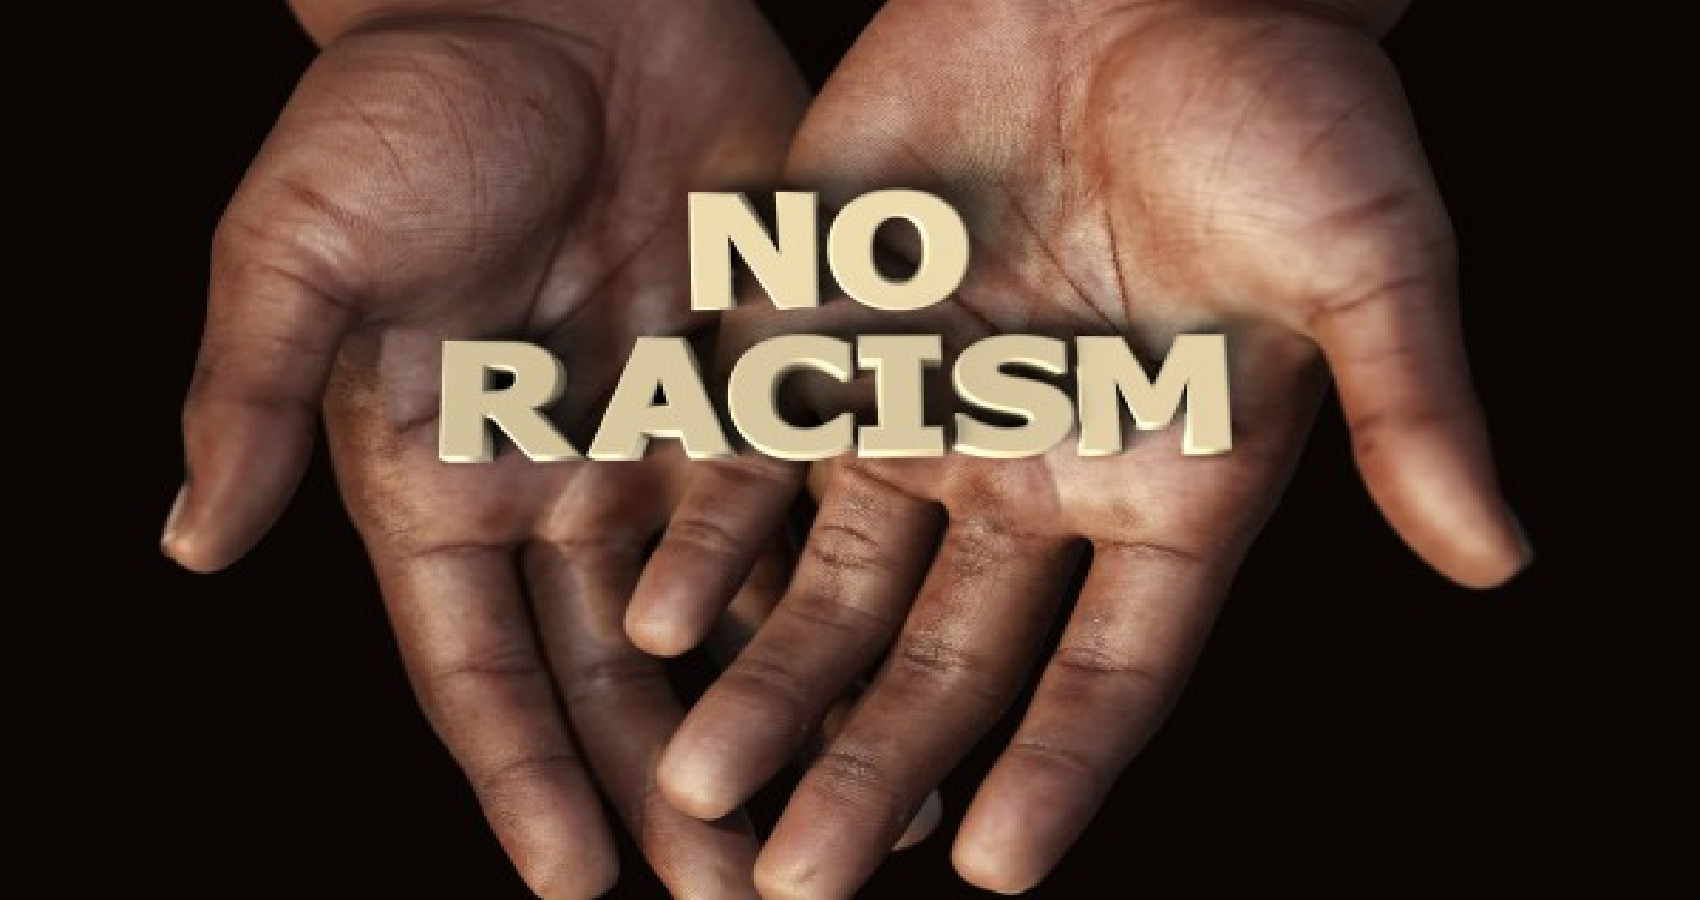 Not Racism: Just Ignorance vs. Brutality